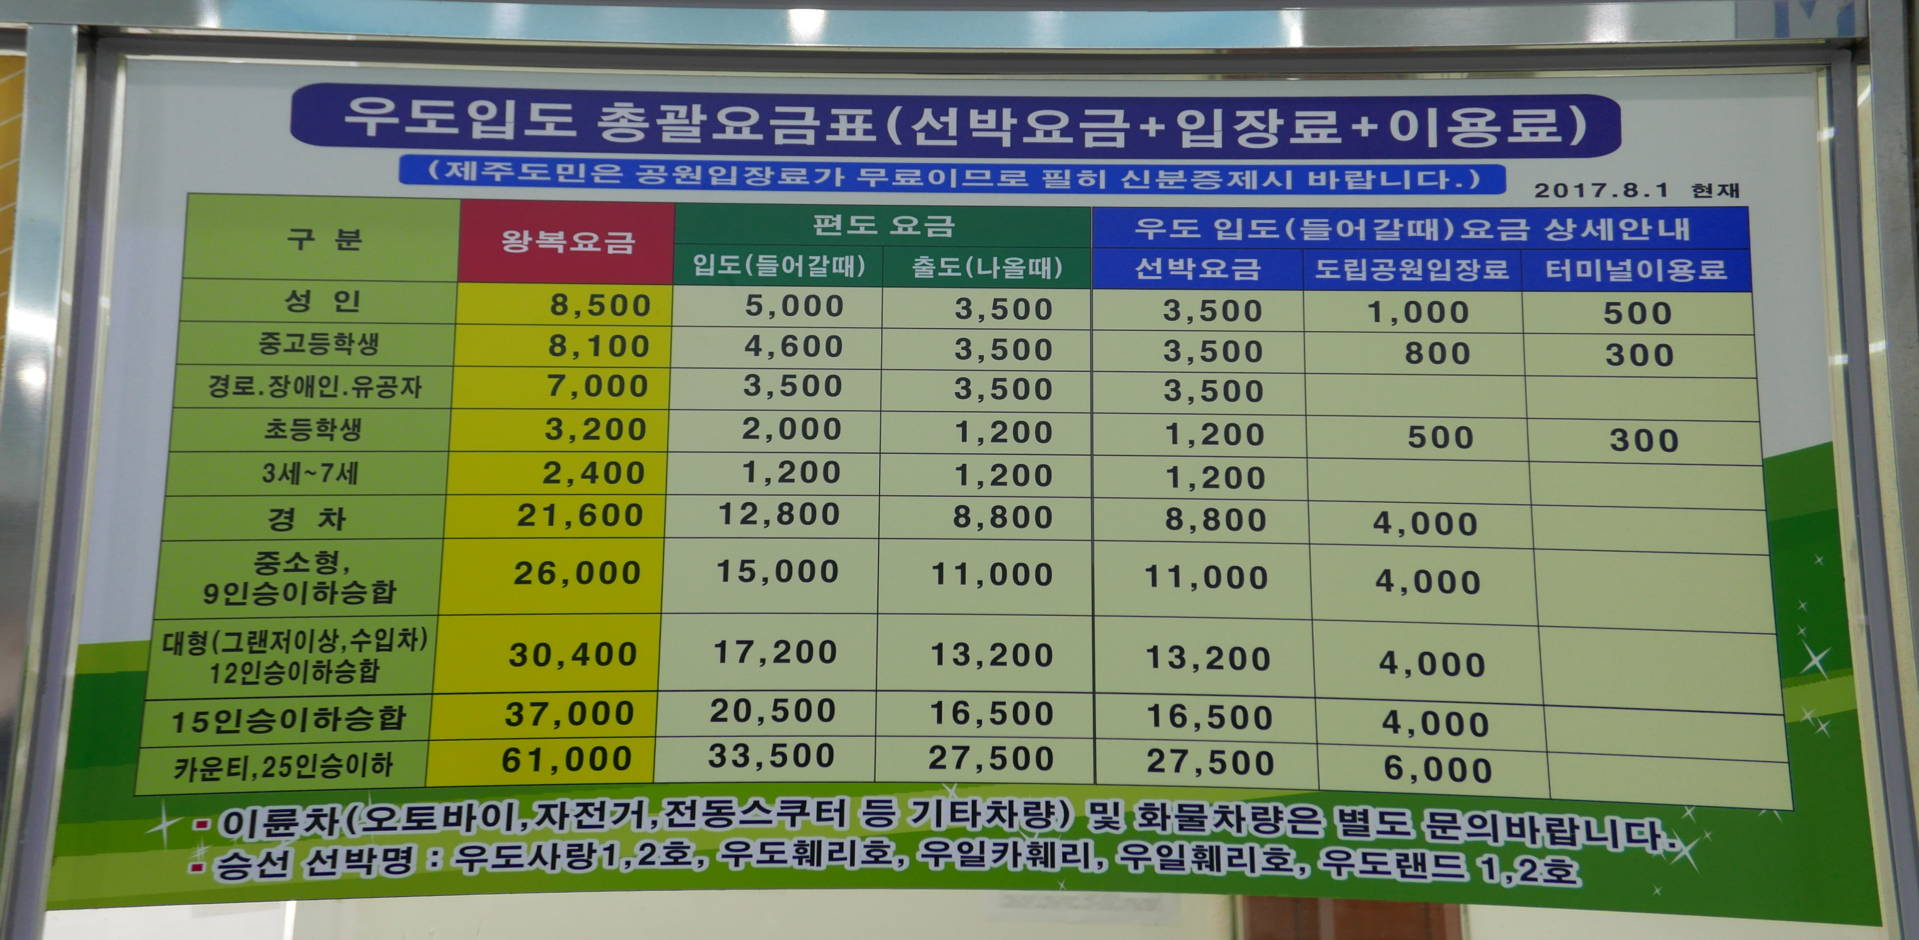 udo ferry fees for passengers and cars